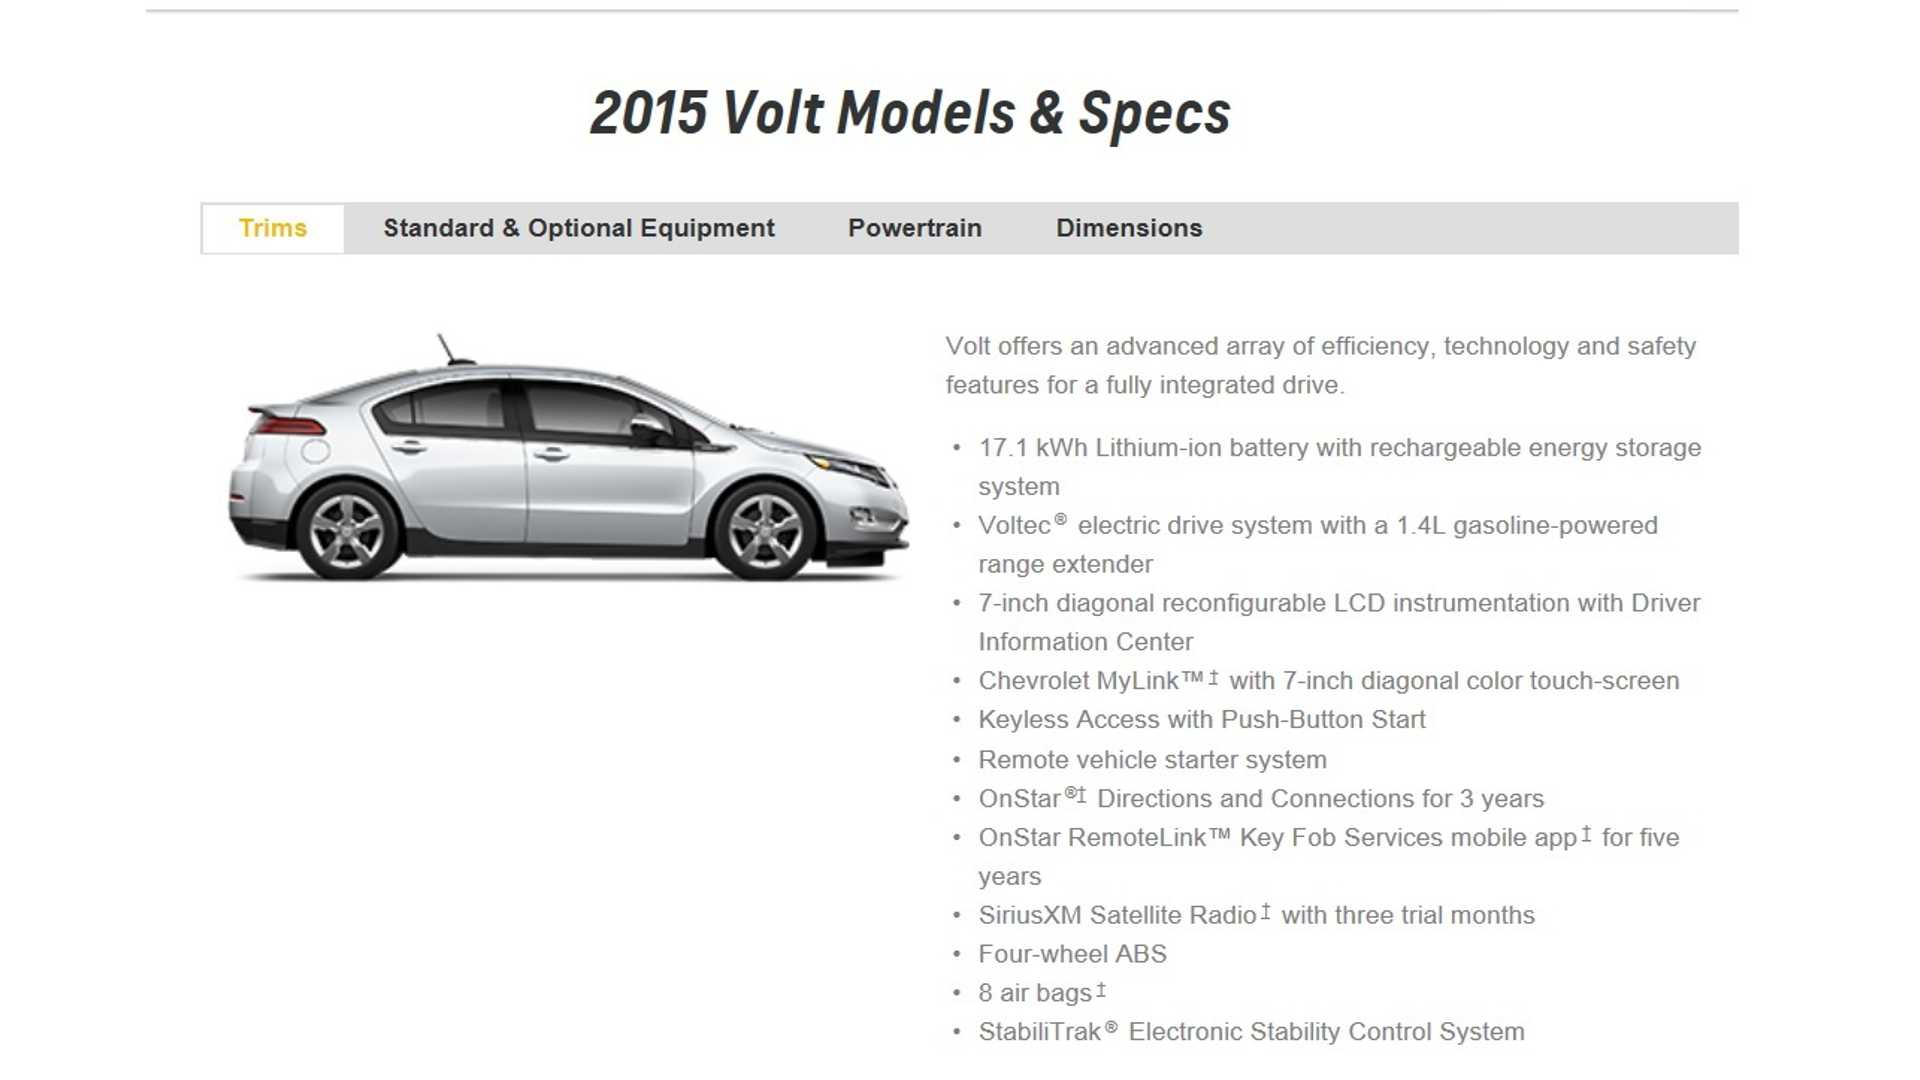 2017 Cadillac Elr To Get Chevy Volt S 17 1 Kwh Battery Insideevs Photos